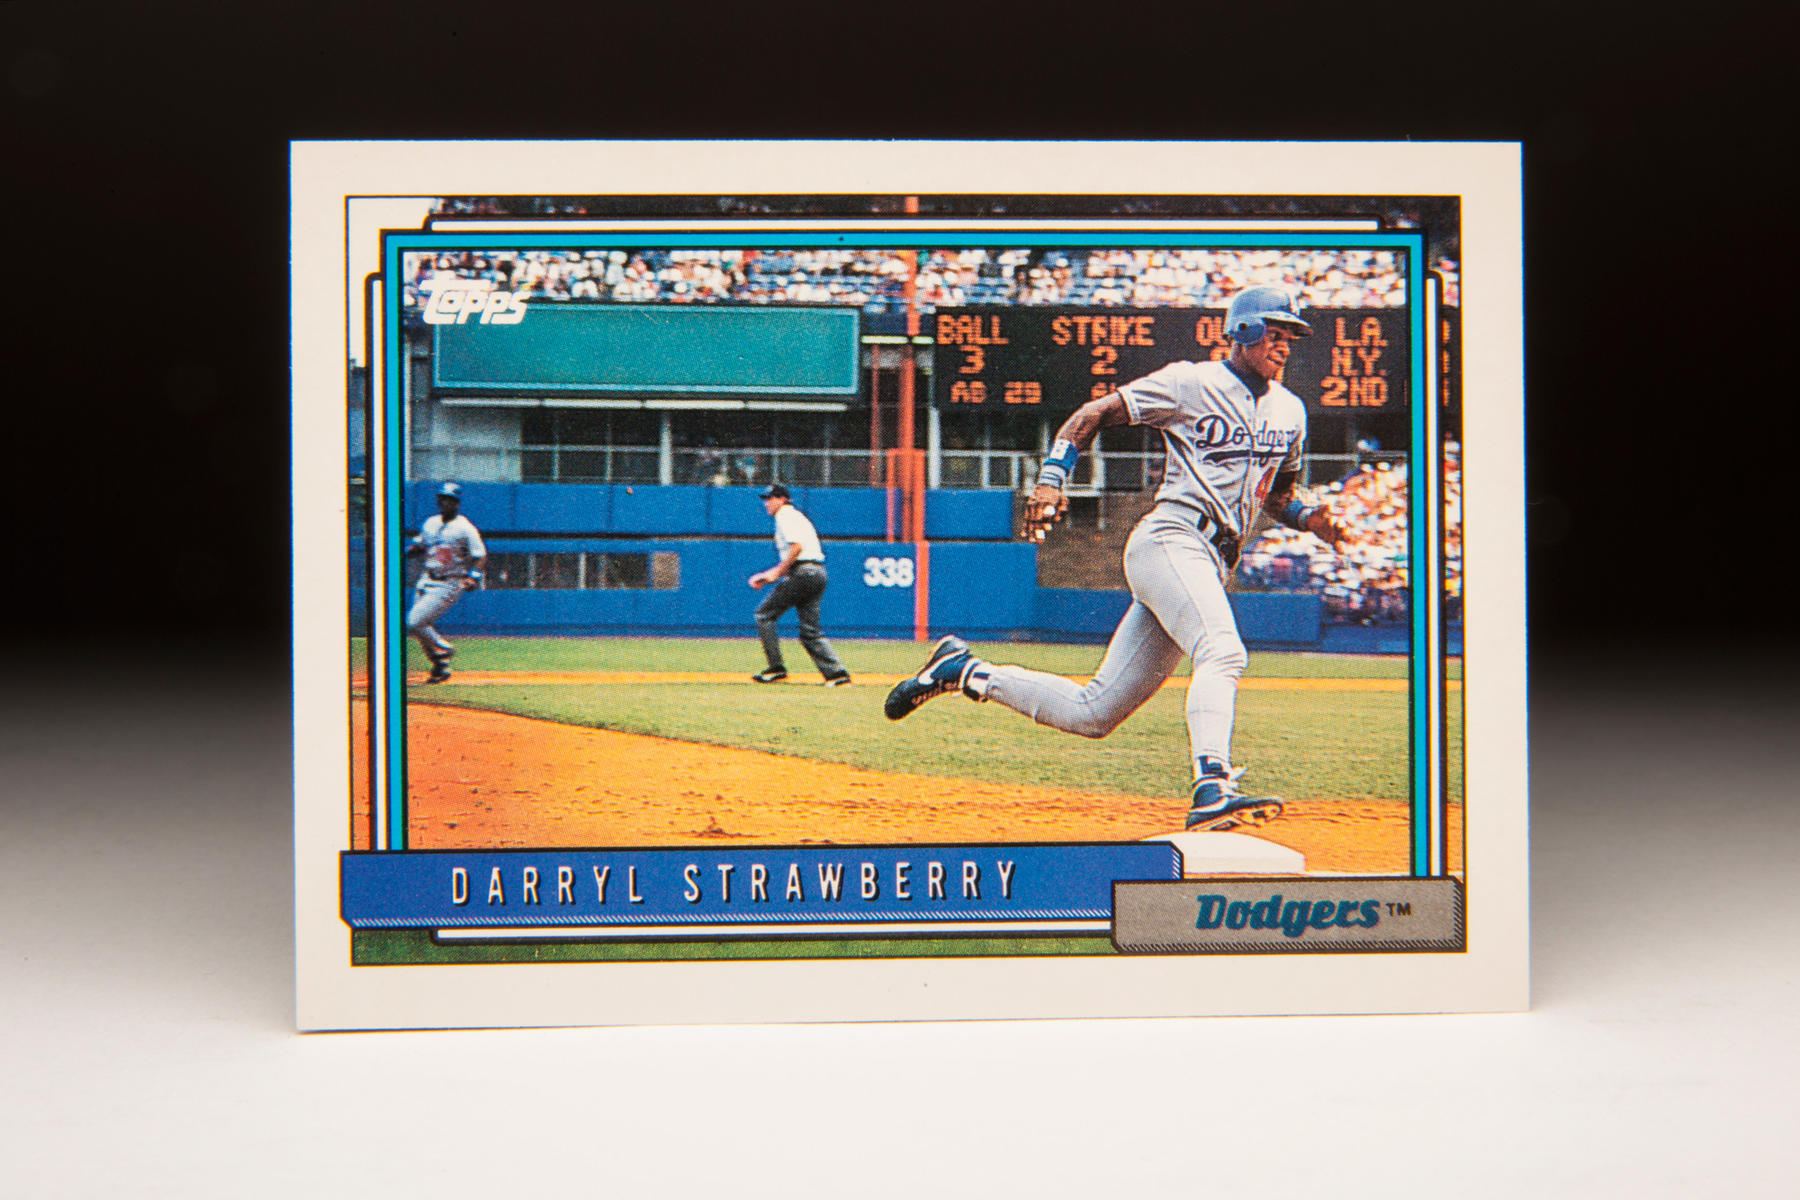 1992 Darryl Strawberry Topps card. (Milo Stewart Jr. / National Baseball Hall of Fame)